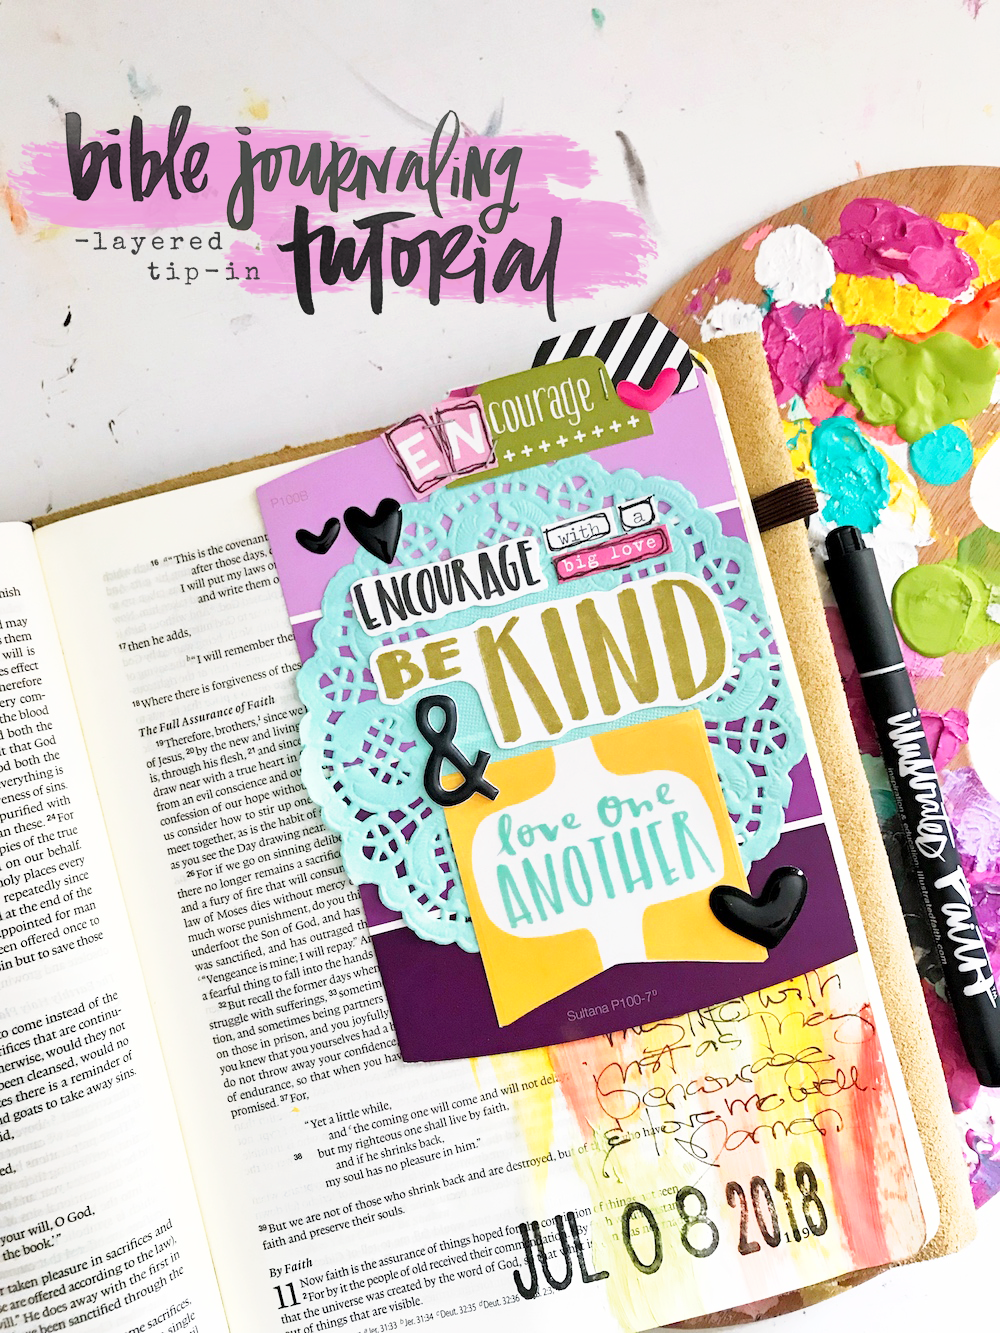 Bible Journaling - Layered Tip-In Technique by April Crosier | Encouraging One Another | Hebrews 10:25